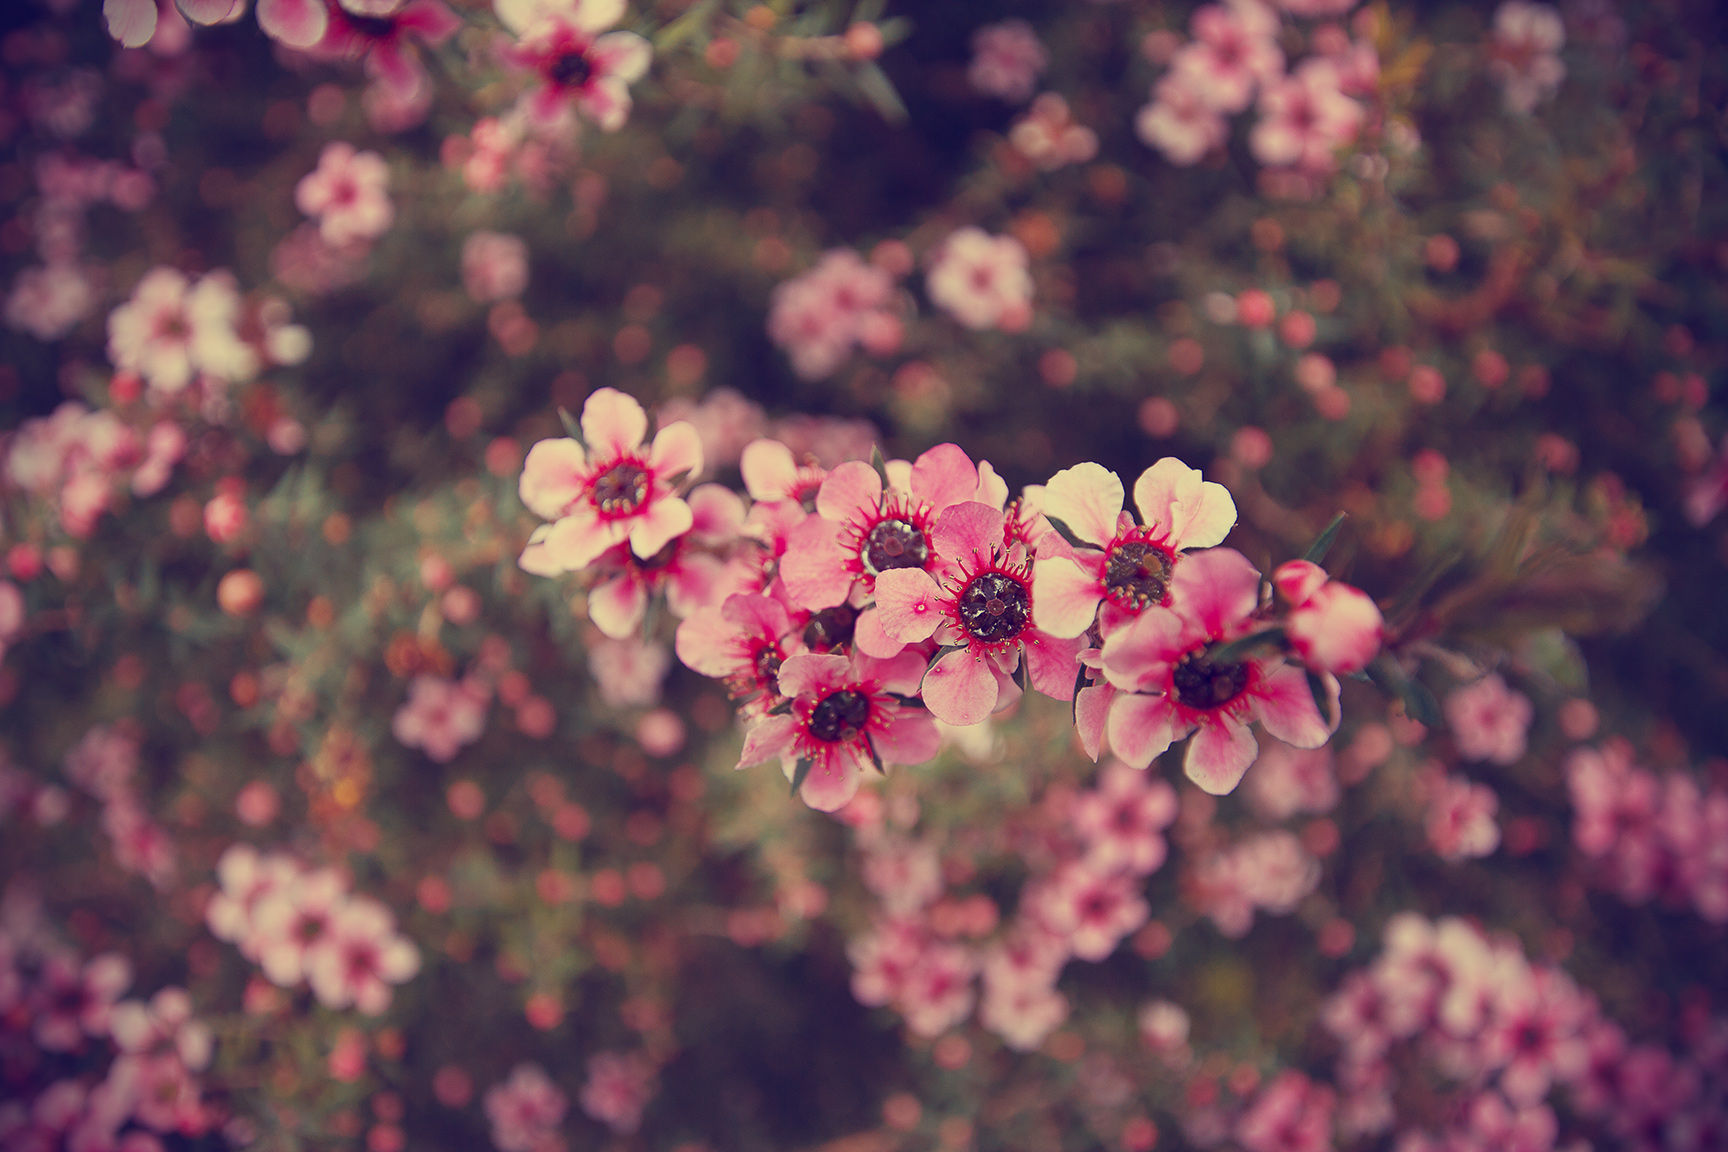 1000 Images About Flowers On Pinterest - HD Wallpaper